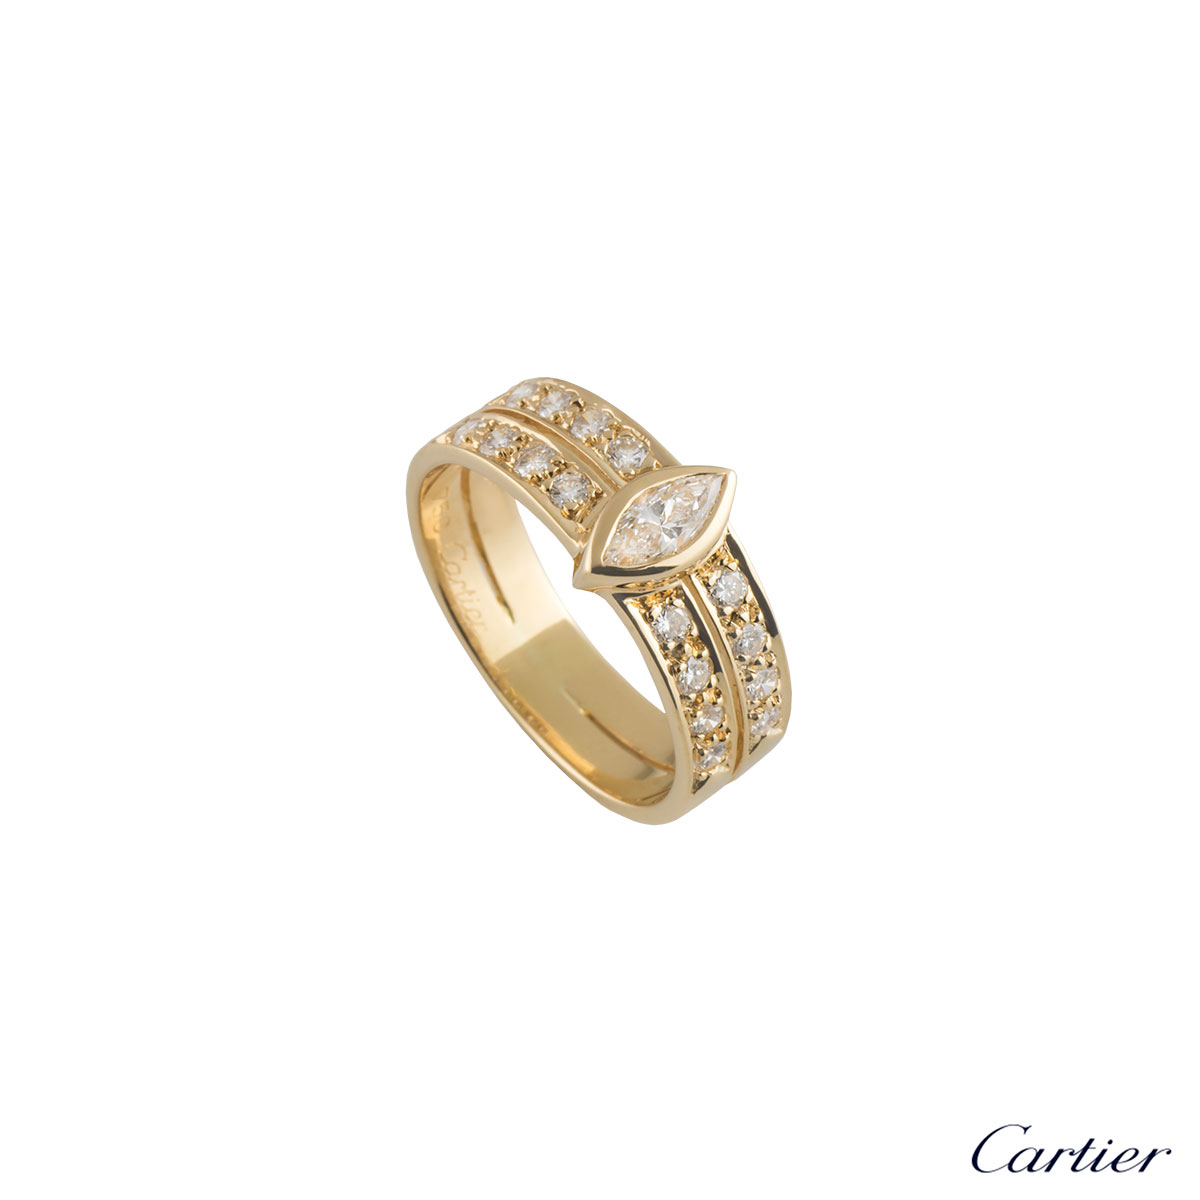 Cartier Yellow Gold Diamond Ring